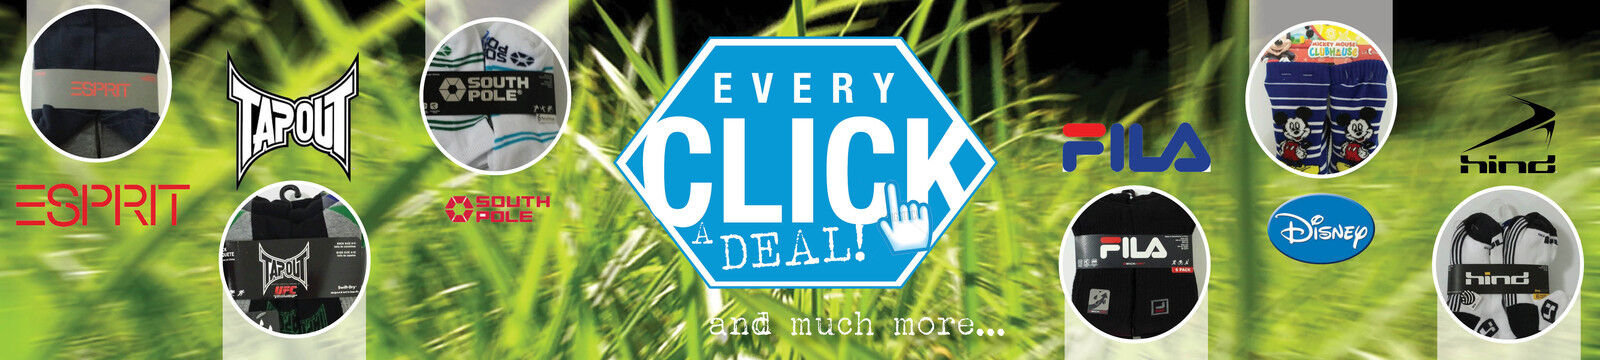 Every Click a Deal